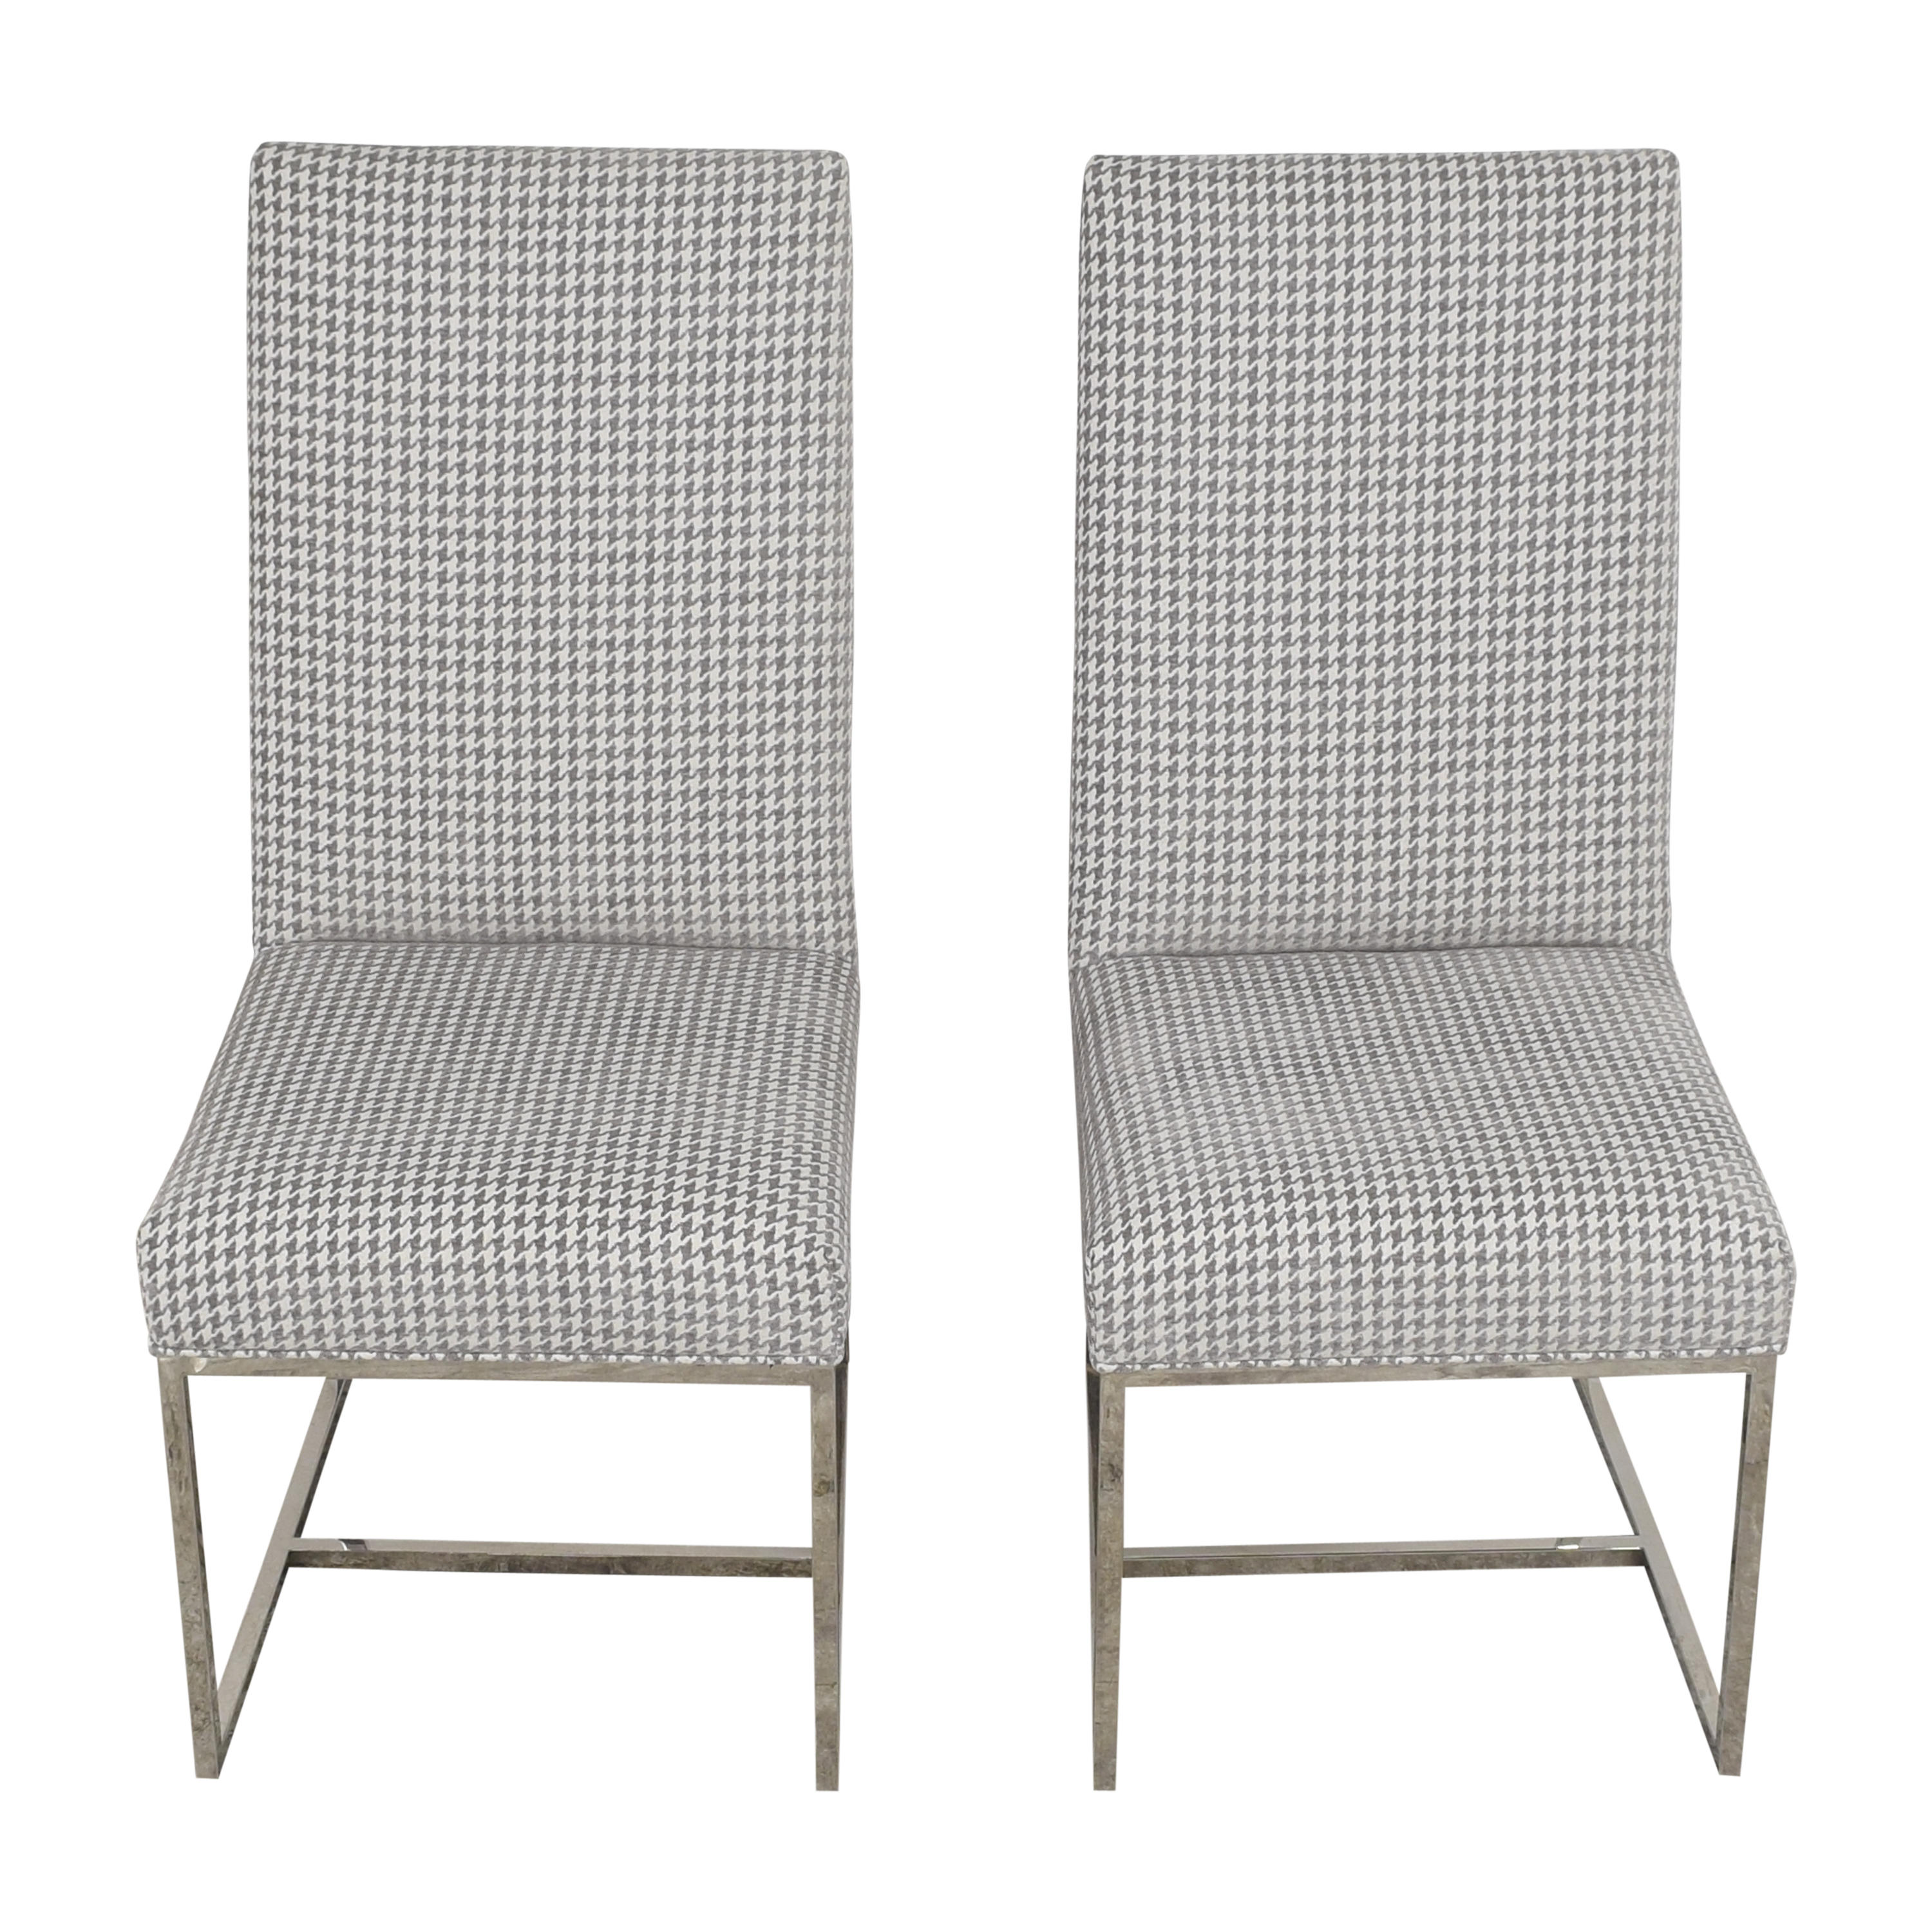 Mitchell Gold + Bob Williams Mitchell Gold + Bob Williams Gage Tall Dining Chairs discount